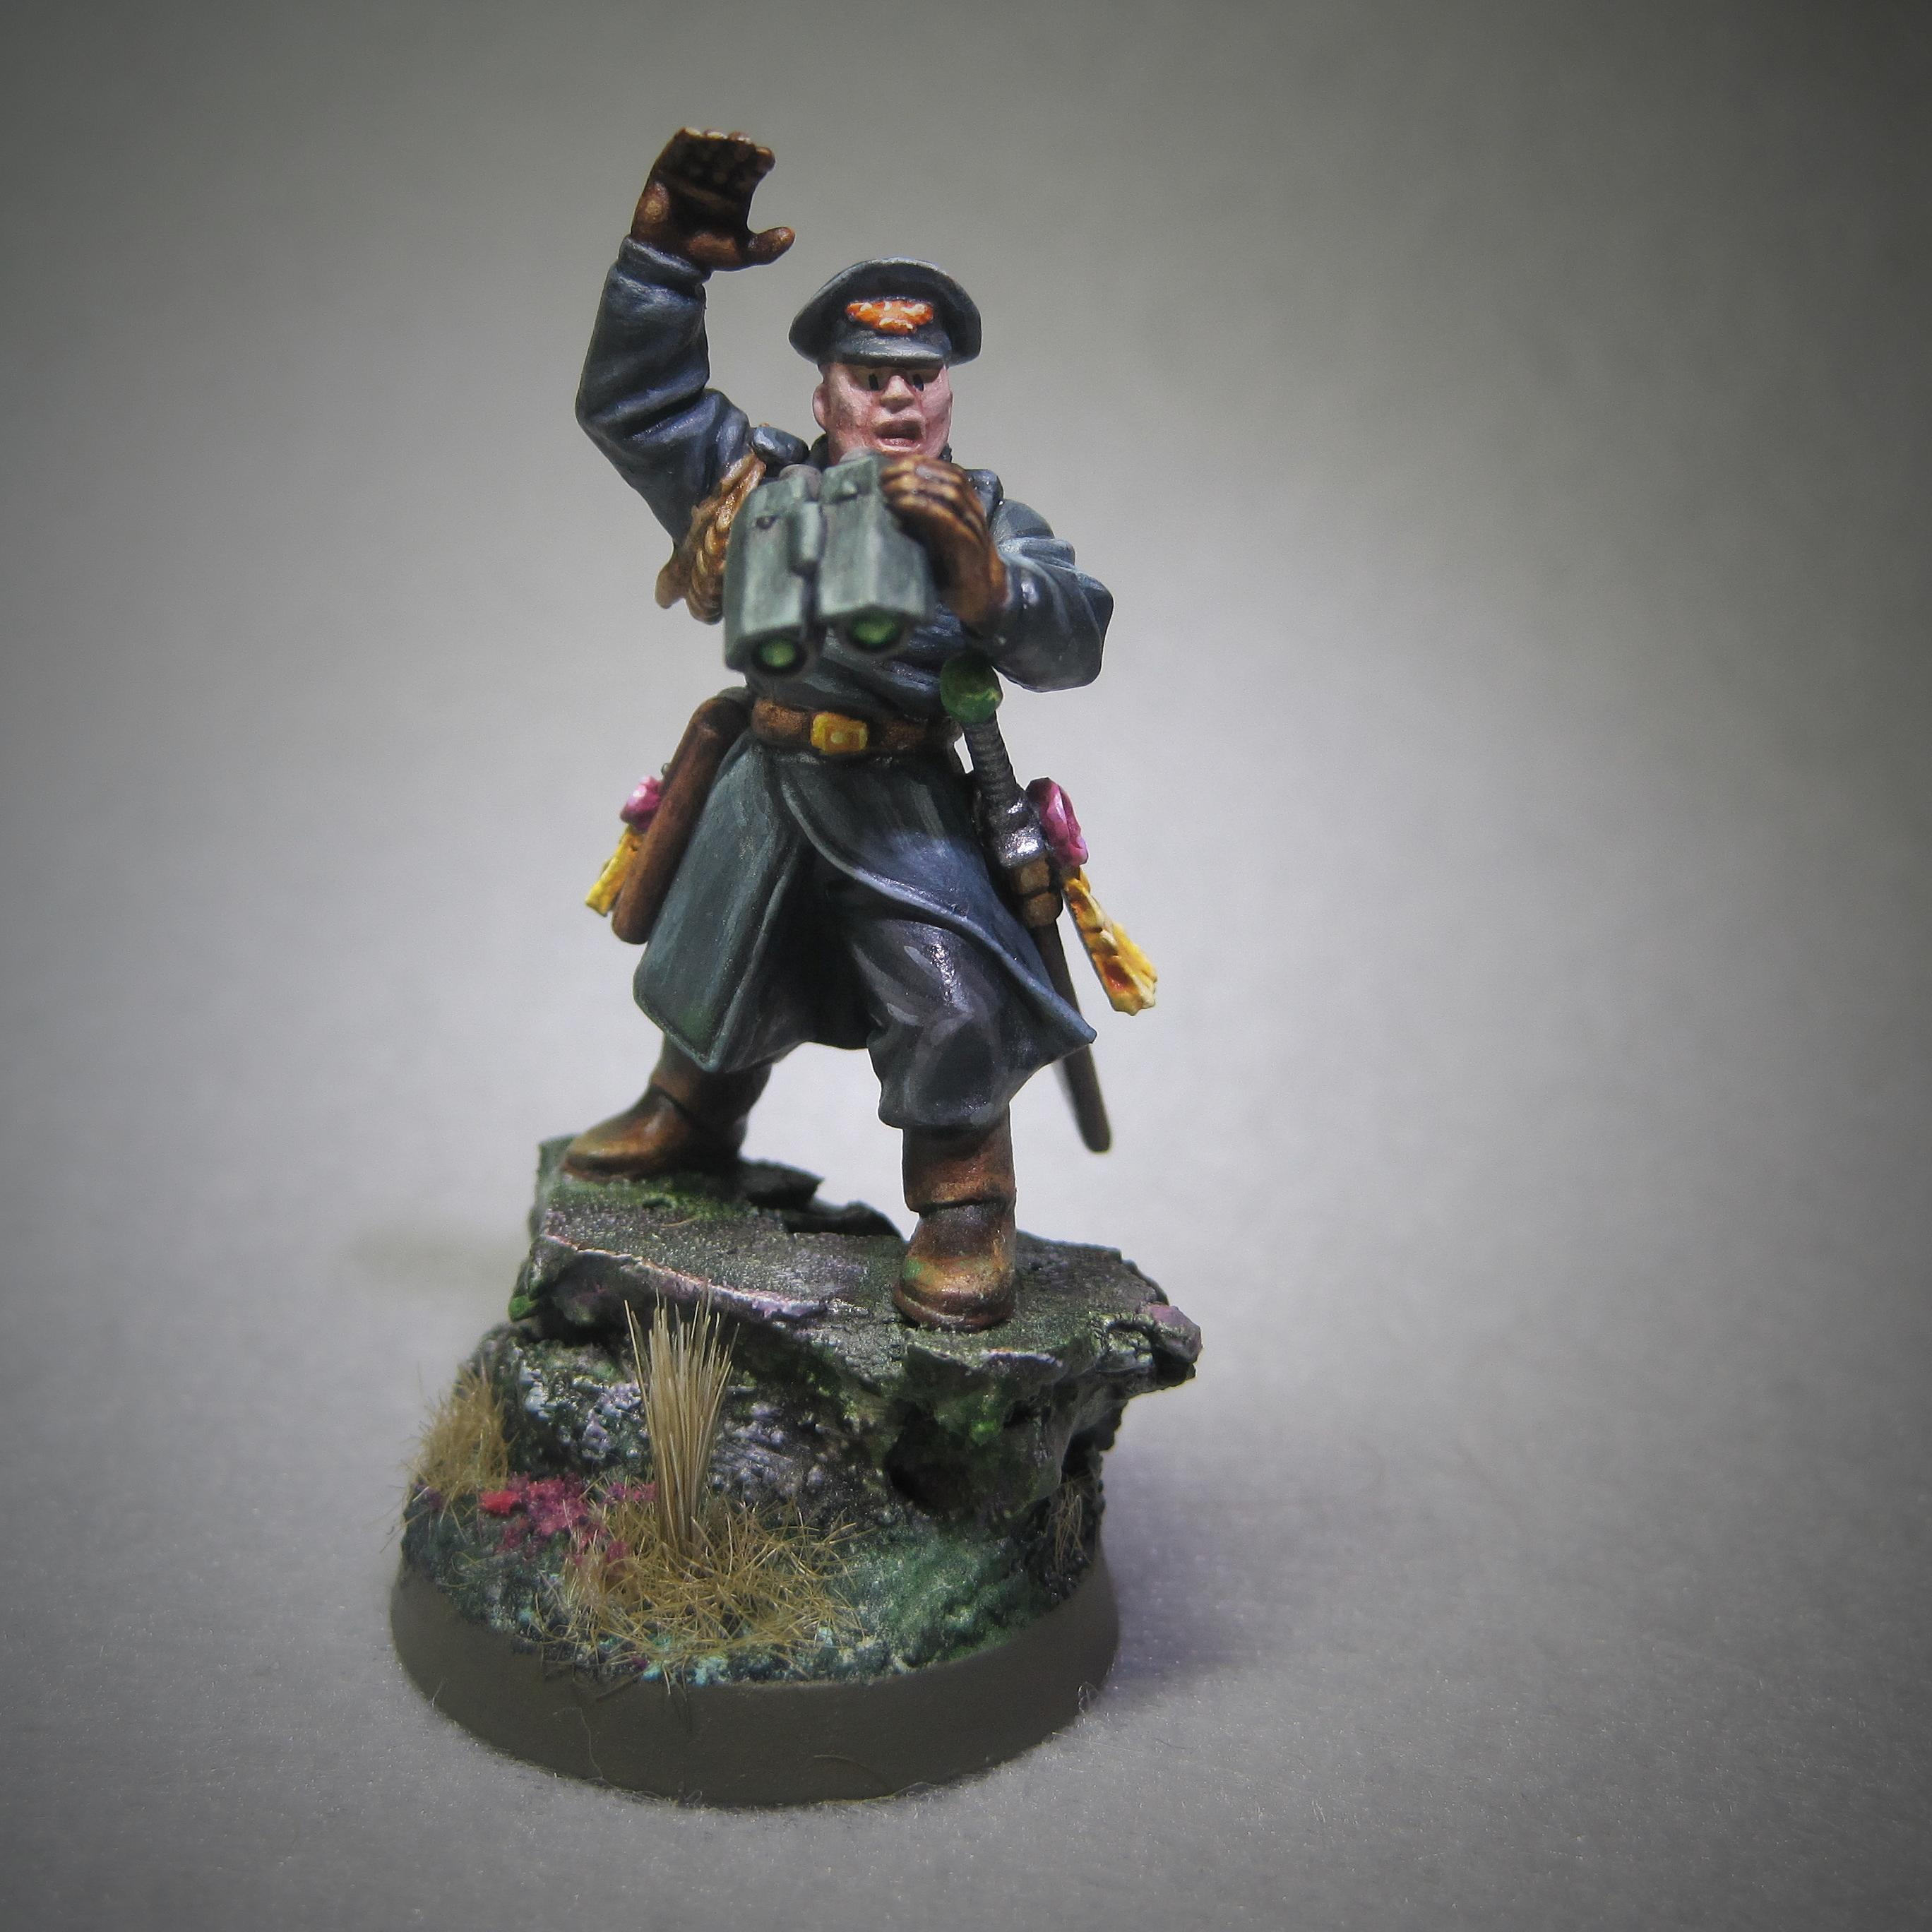 Imperial Guard, Inducted, Inquisitor, Veteran, Warhammer 40,000